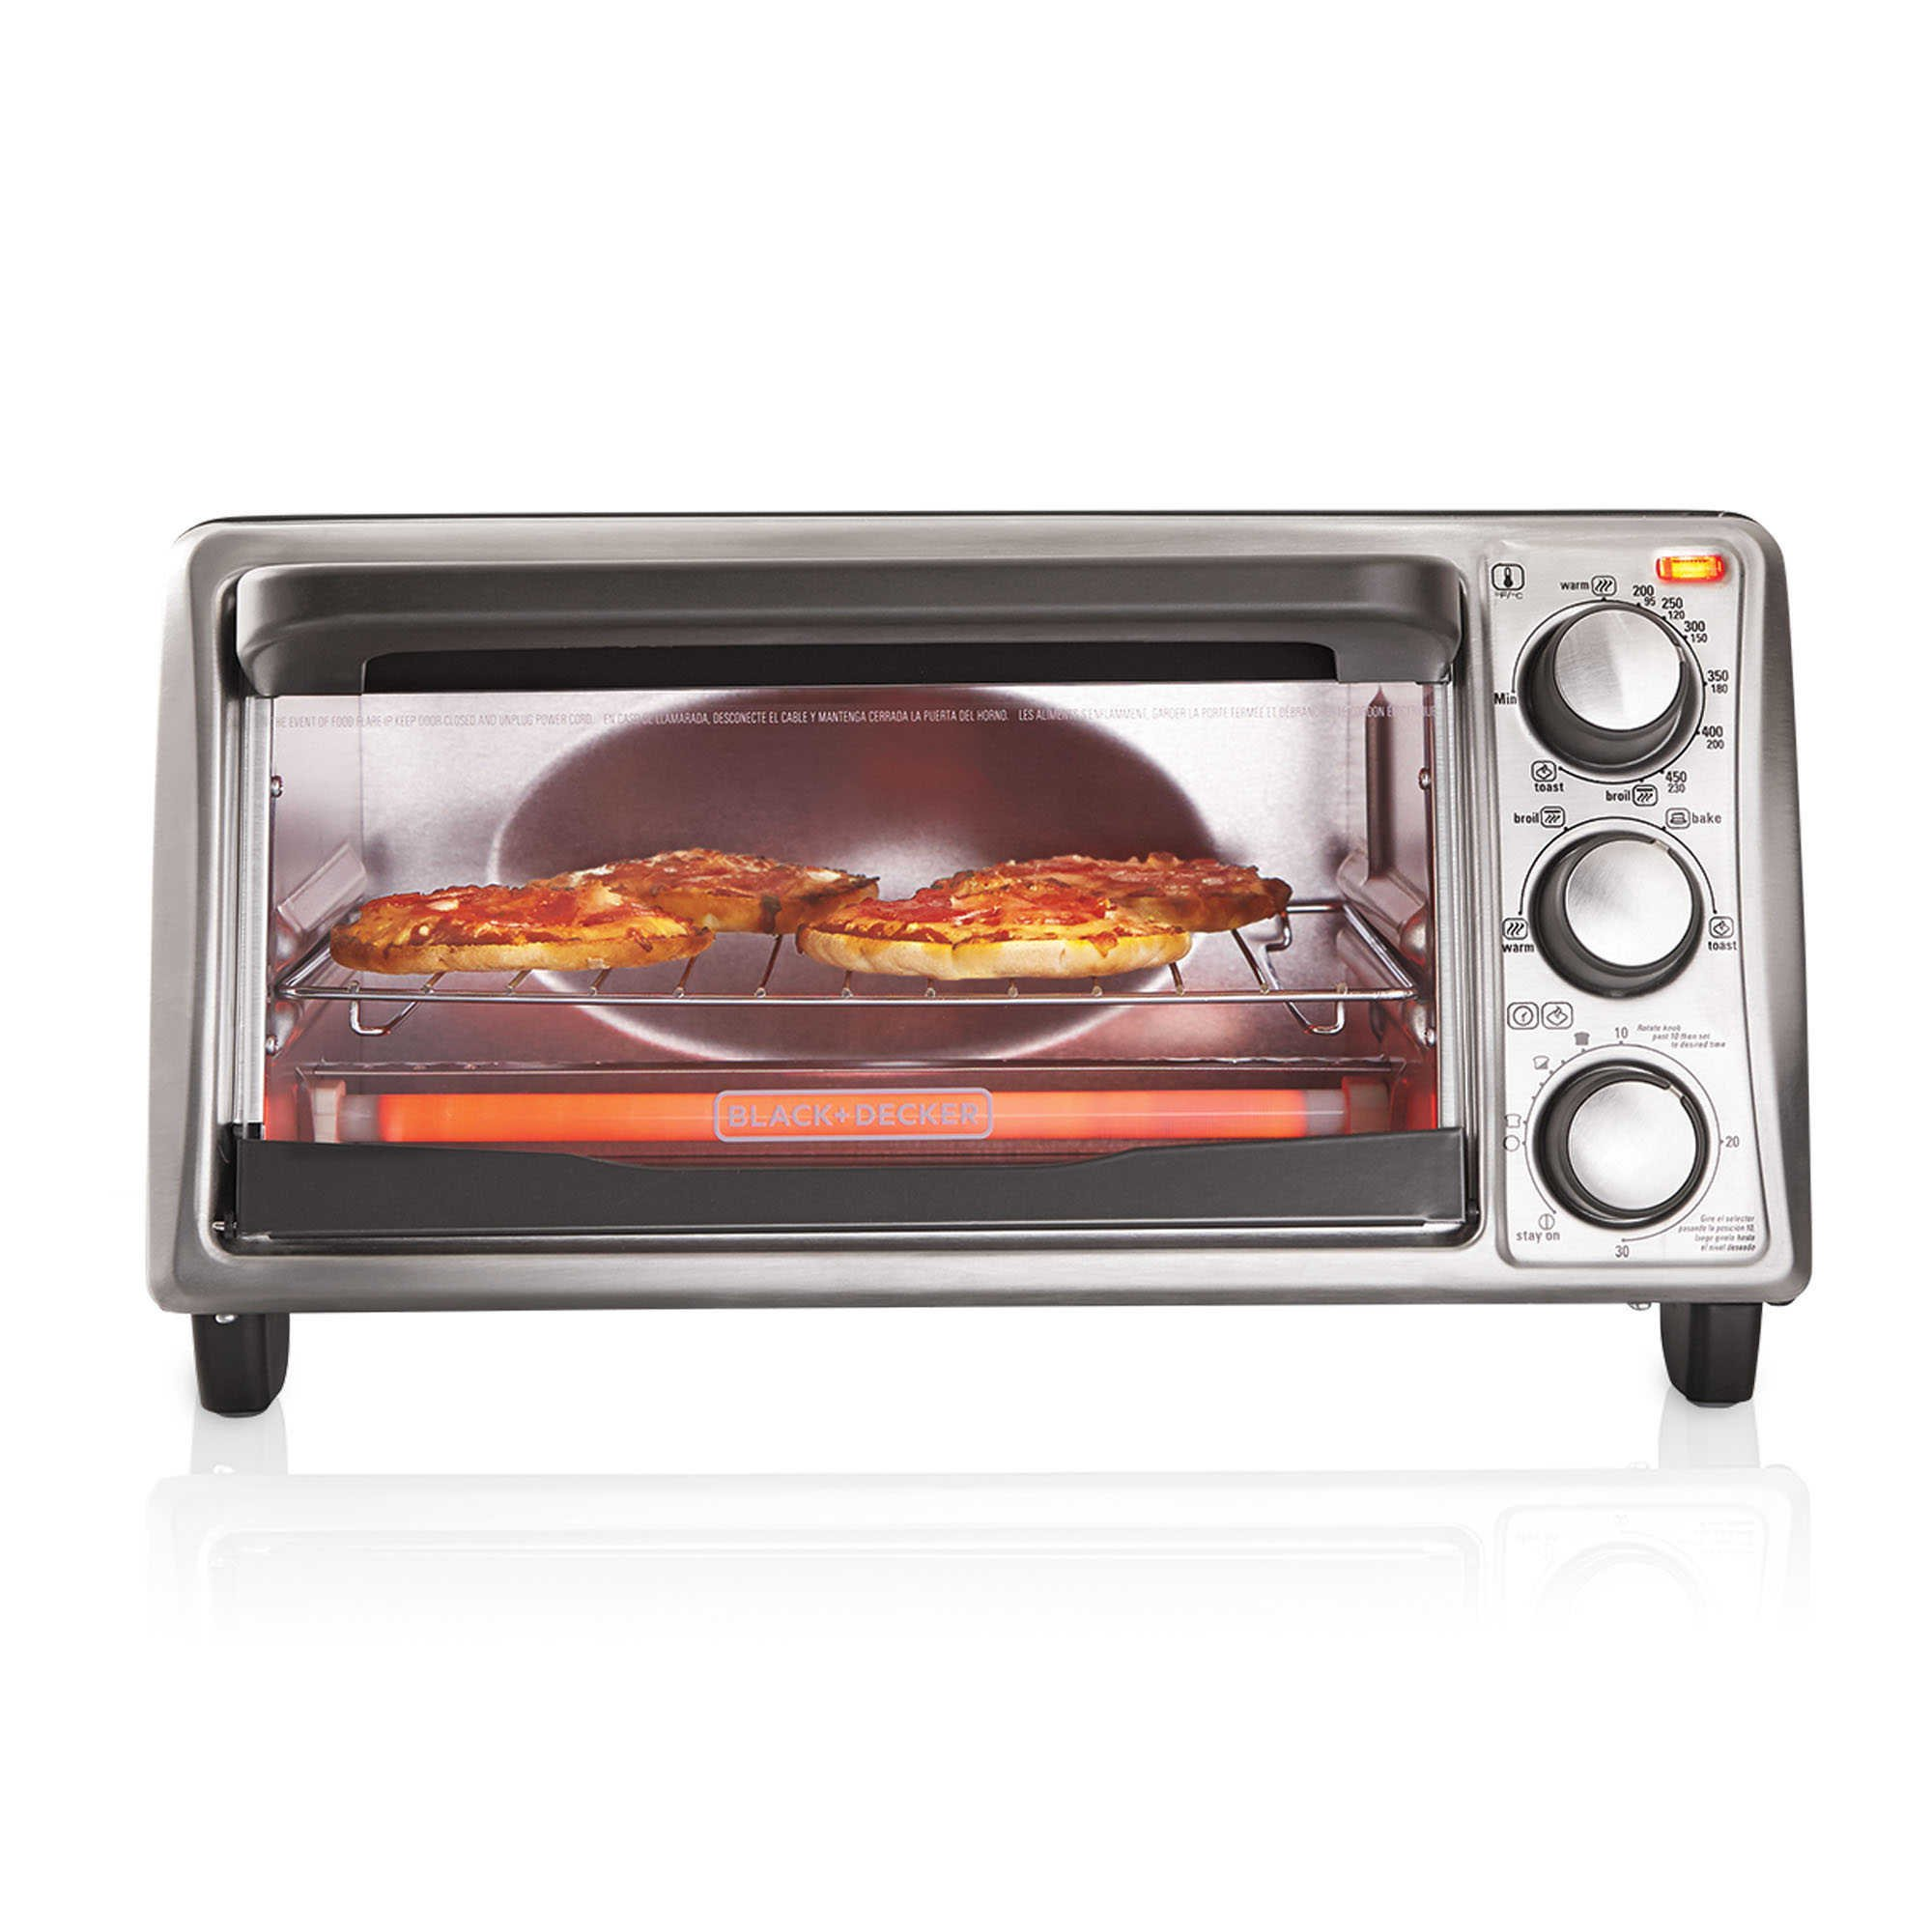 Enjoy countertop cooking versatility with the 4-Slice Toaster Oven